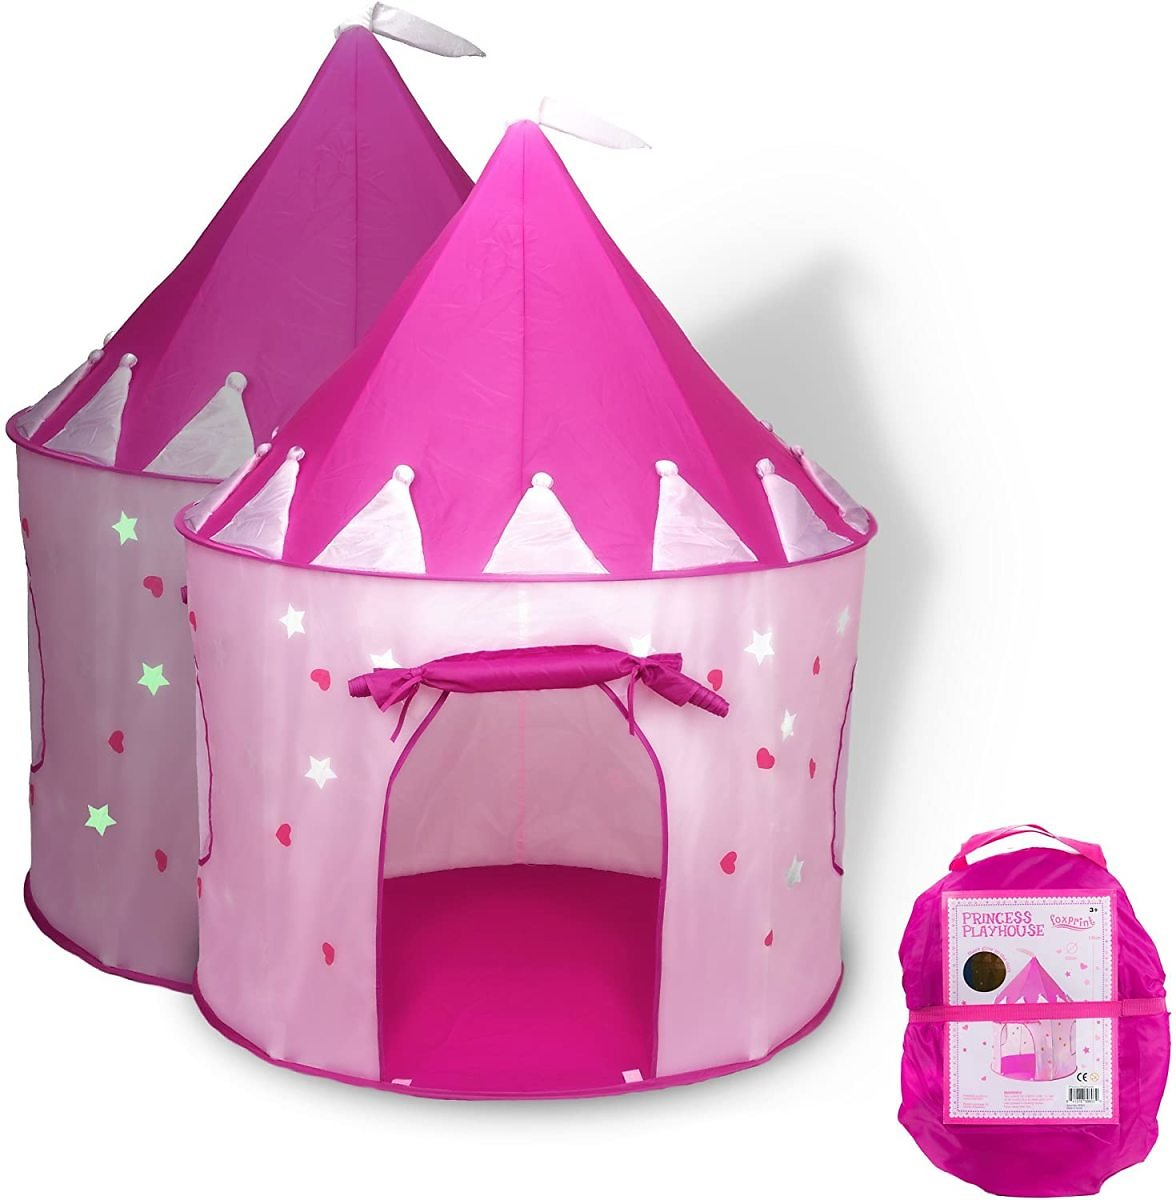 39% Discount - FoxPrint Princess Castle Play Tent with Glow in The Dark Stars, Foldable Pop Up Pink Play Tent/House Toy for Indo